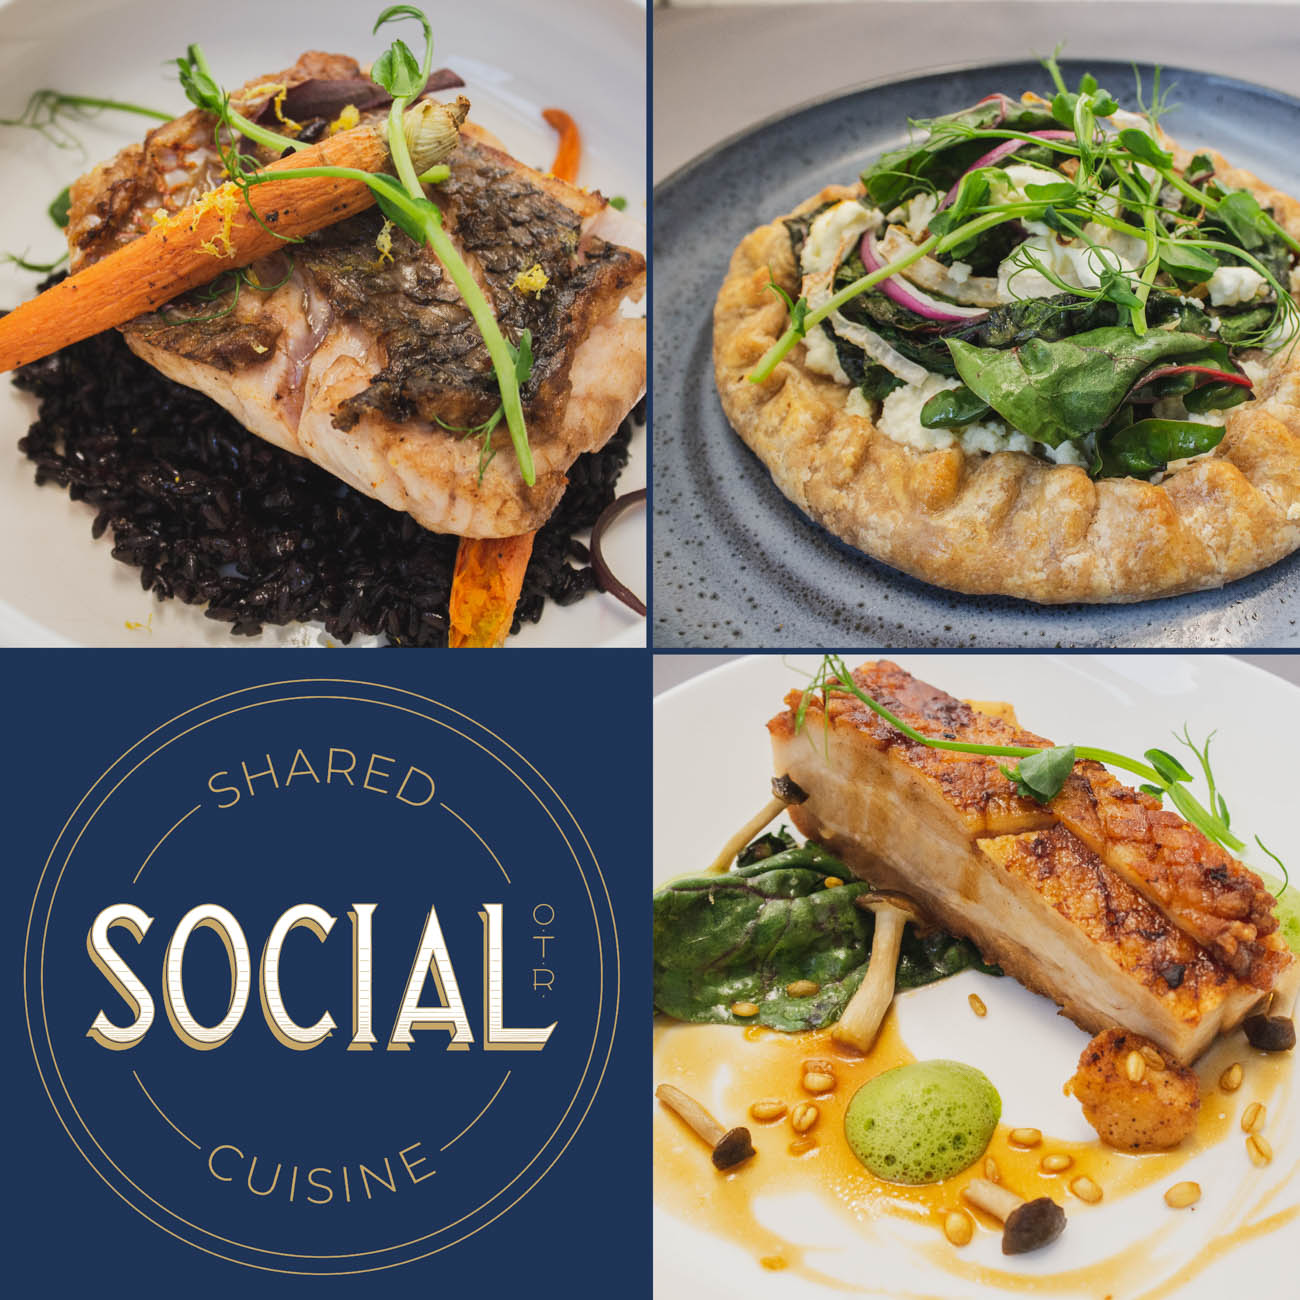 The restaurant opened in February 2019. The food takes cues from all different cultures of cuisine with small plates and communal dining options. The back entrance of Social OTR from Campbell Street is known as The Alley at Social that stays open a little later than the front. They host a 513 Happy Hour from 4 PM-6 PM that includes $5 house wines, $1 oysters, and $3 draft beers. / Image: Erin Glass // Published: 3.27.19